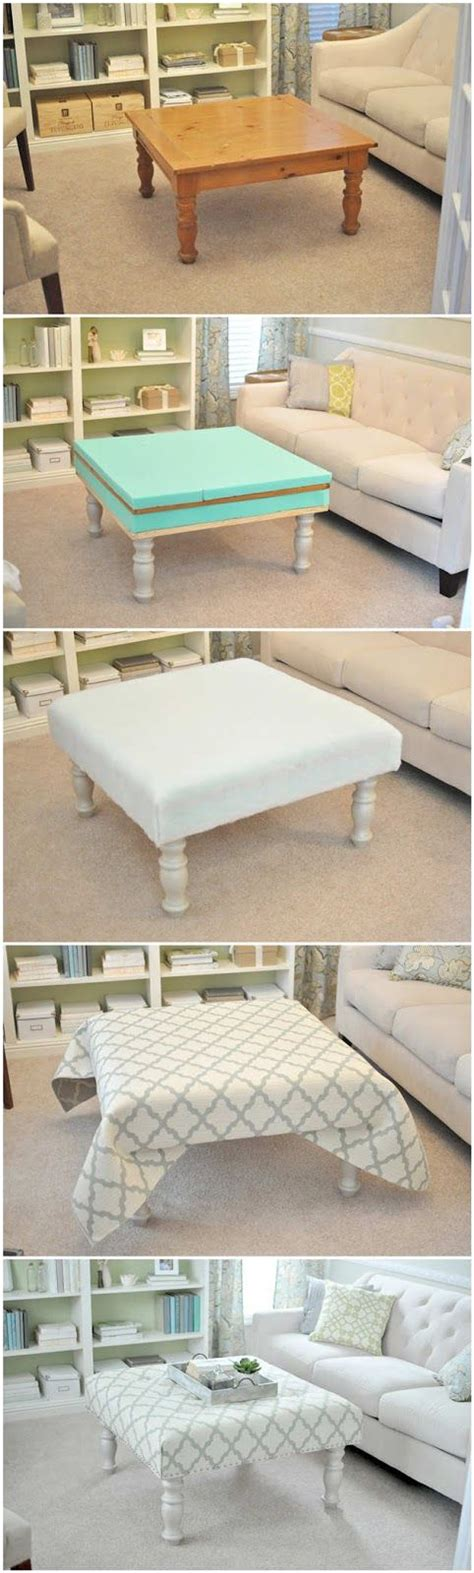 Upholstered Ottoman Diy Best 25 Diy Ottoman Ideas On Create Button Tufted Bench And Repurposed Furniture